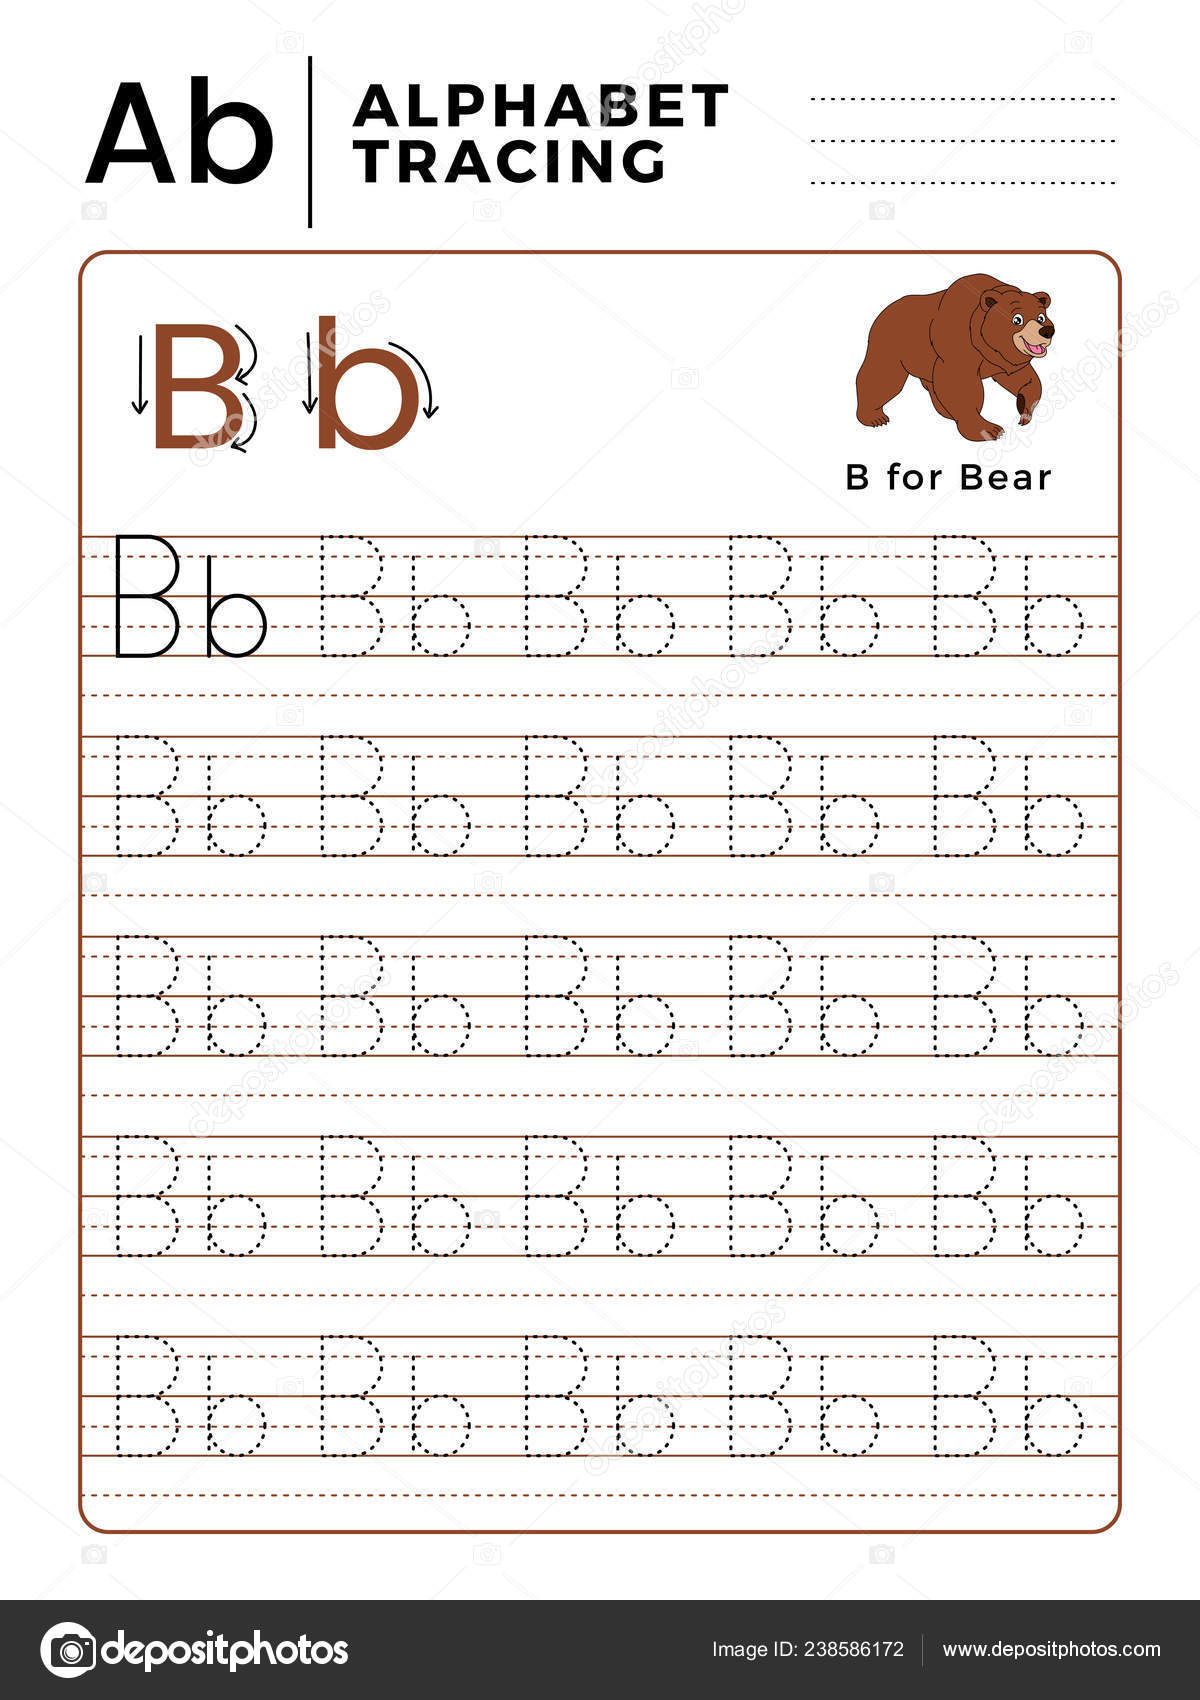 Letter B Alphabet Tracing Book With Example And Funny Bear Cartoon.  Preschool Worksheet For Practicing Fine Motor Skill. Vector Animal  Illustration for Alphabet Tracing Vectors